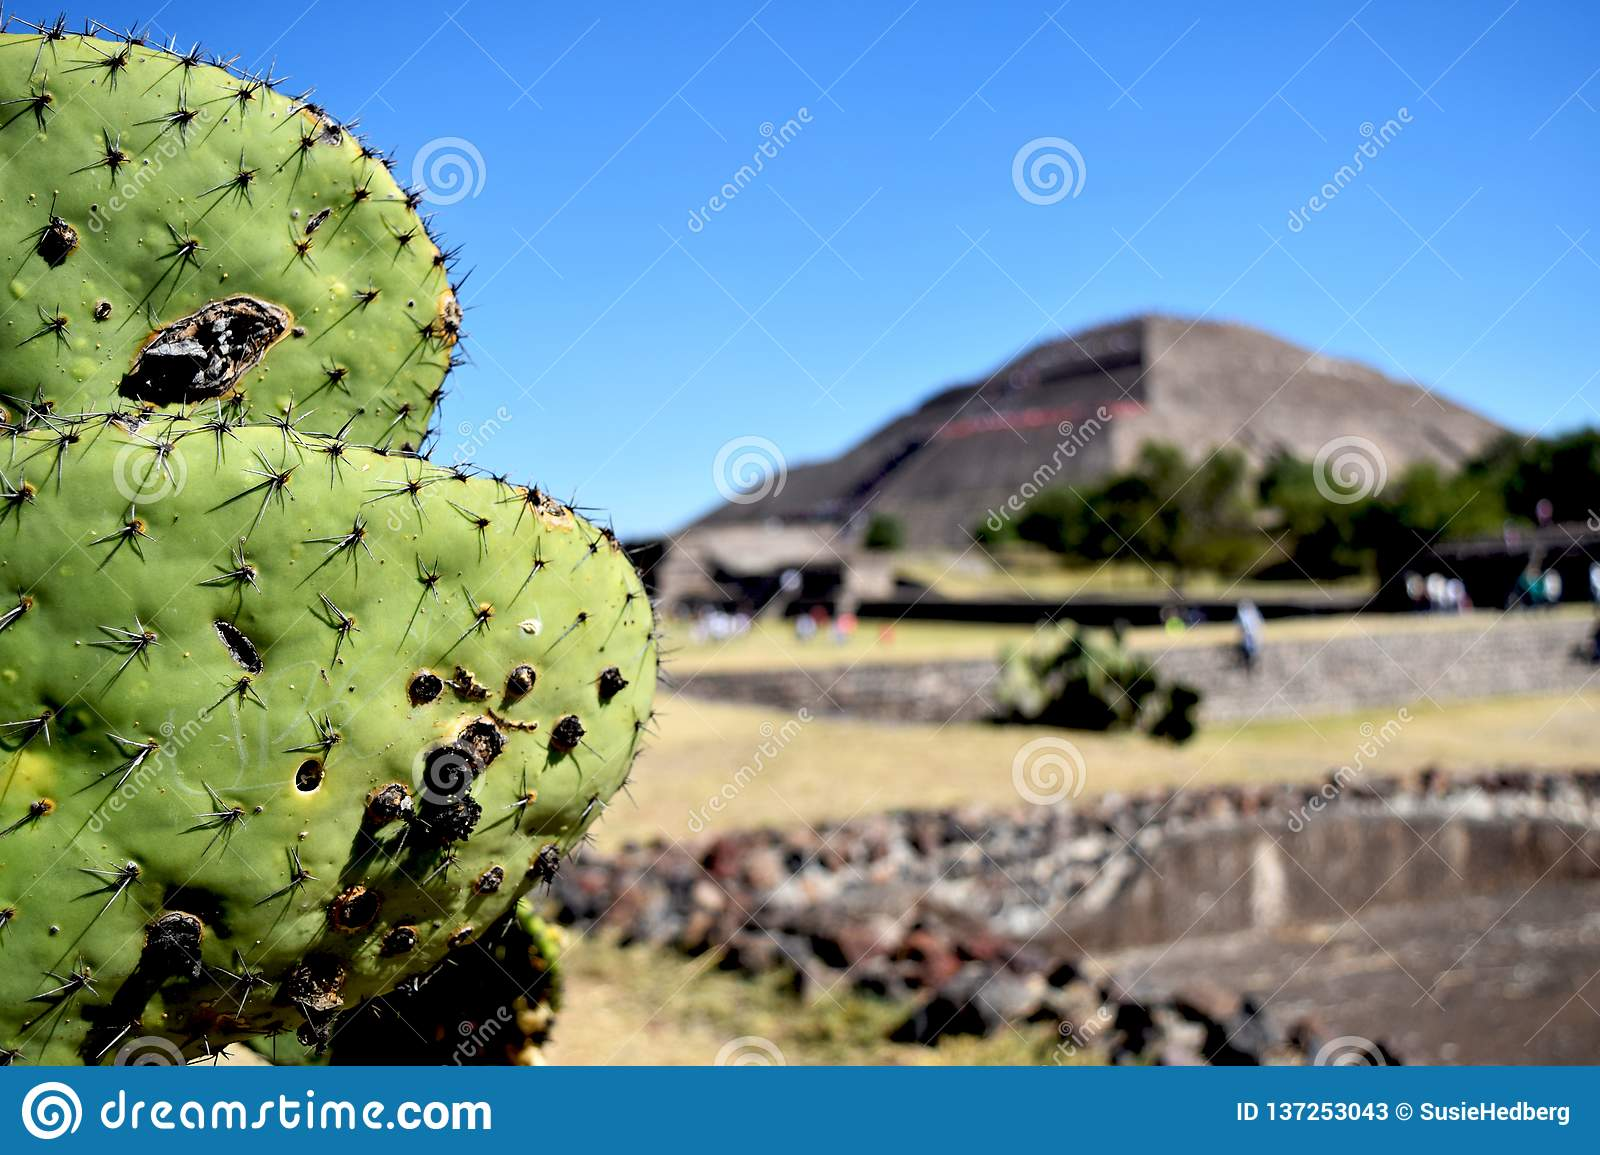 Green cactus in front of pyramid